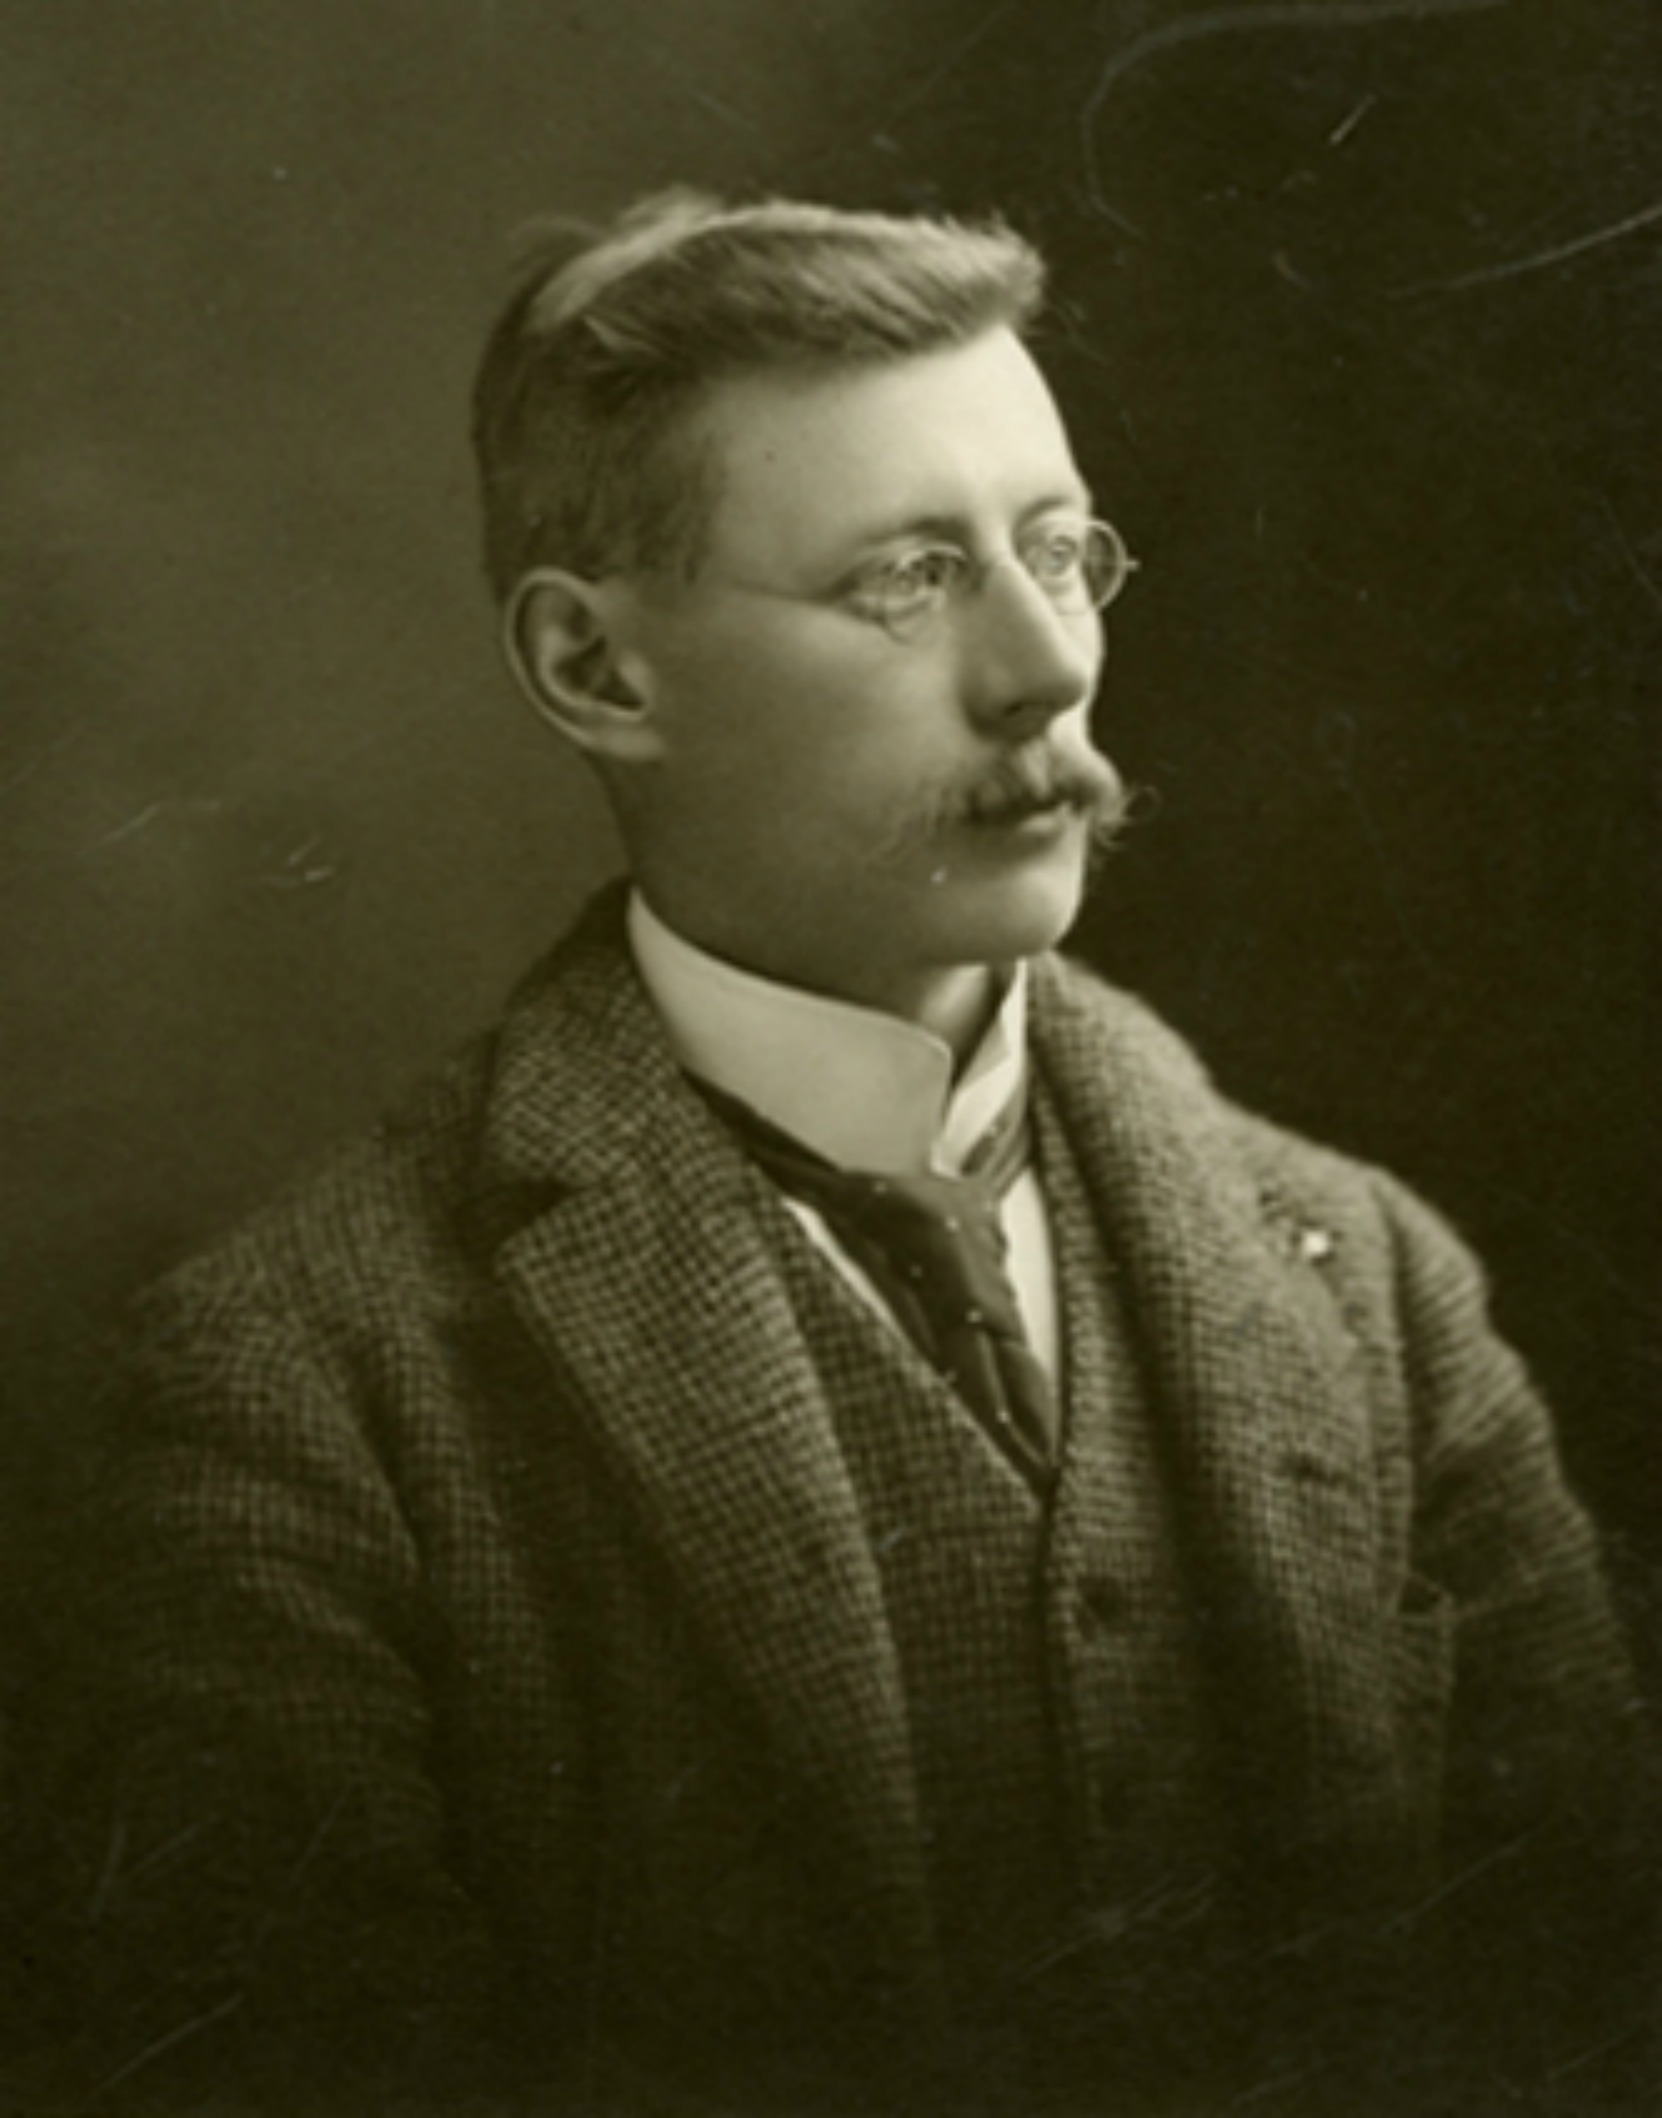 Francis (Frank) Henry Price, circa 1900 (photo courtesy of Keith Price)